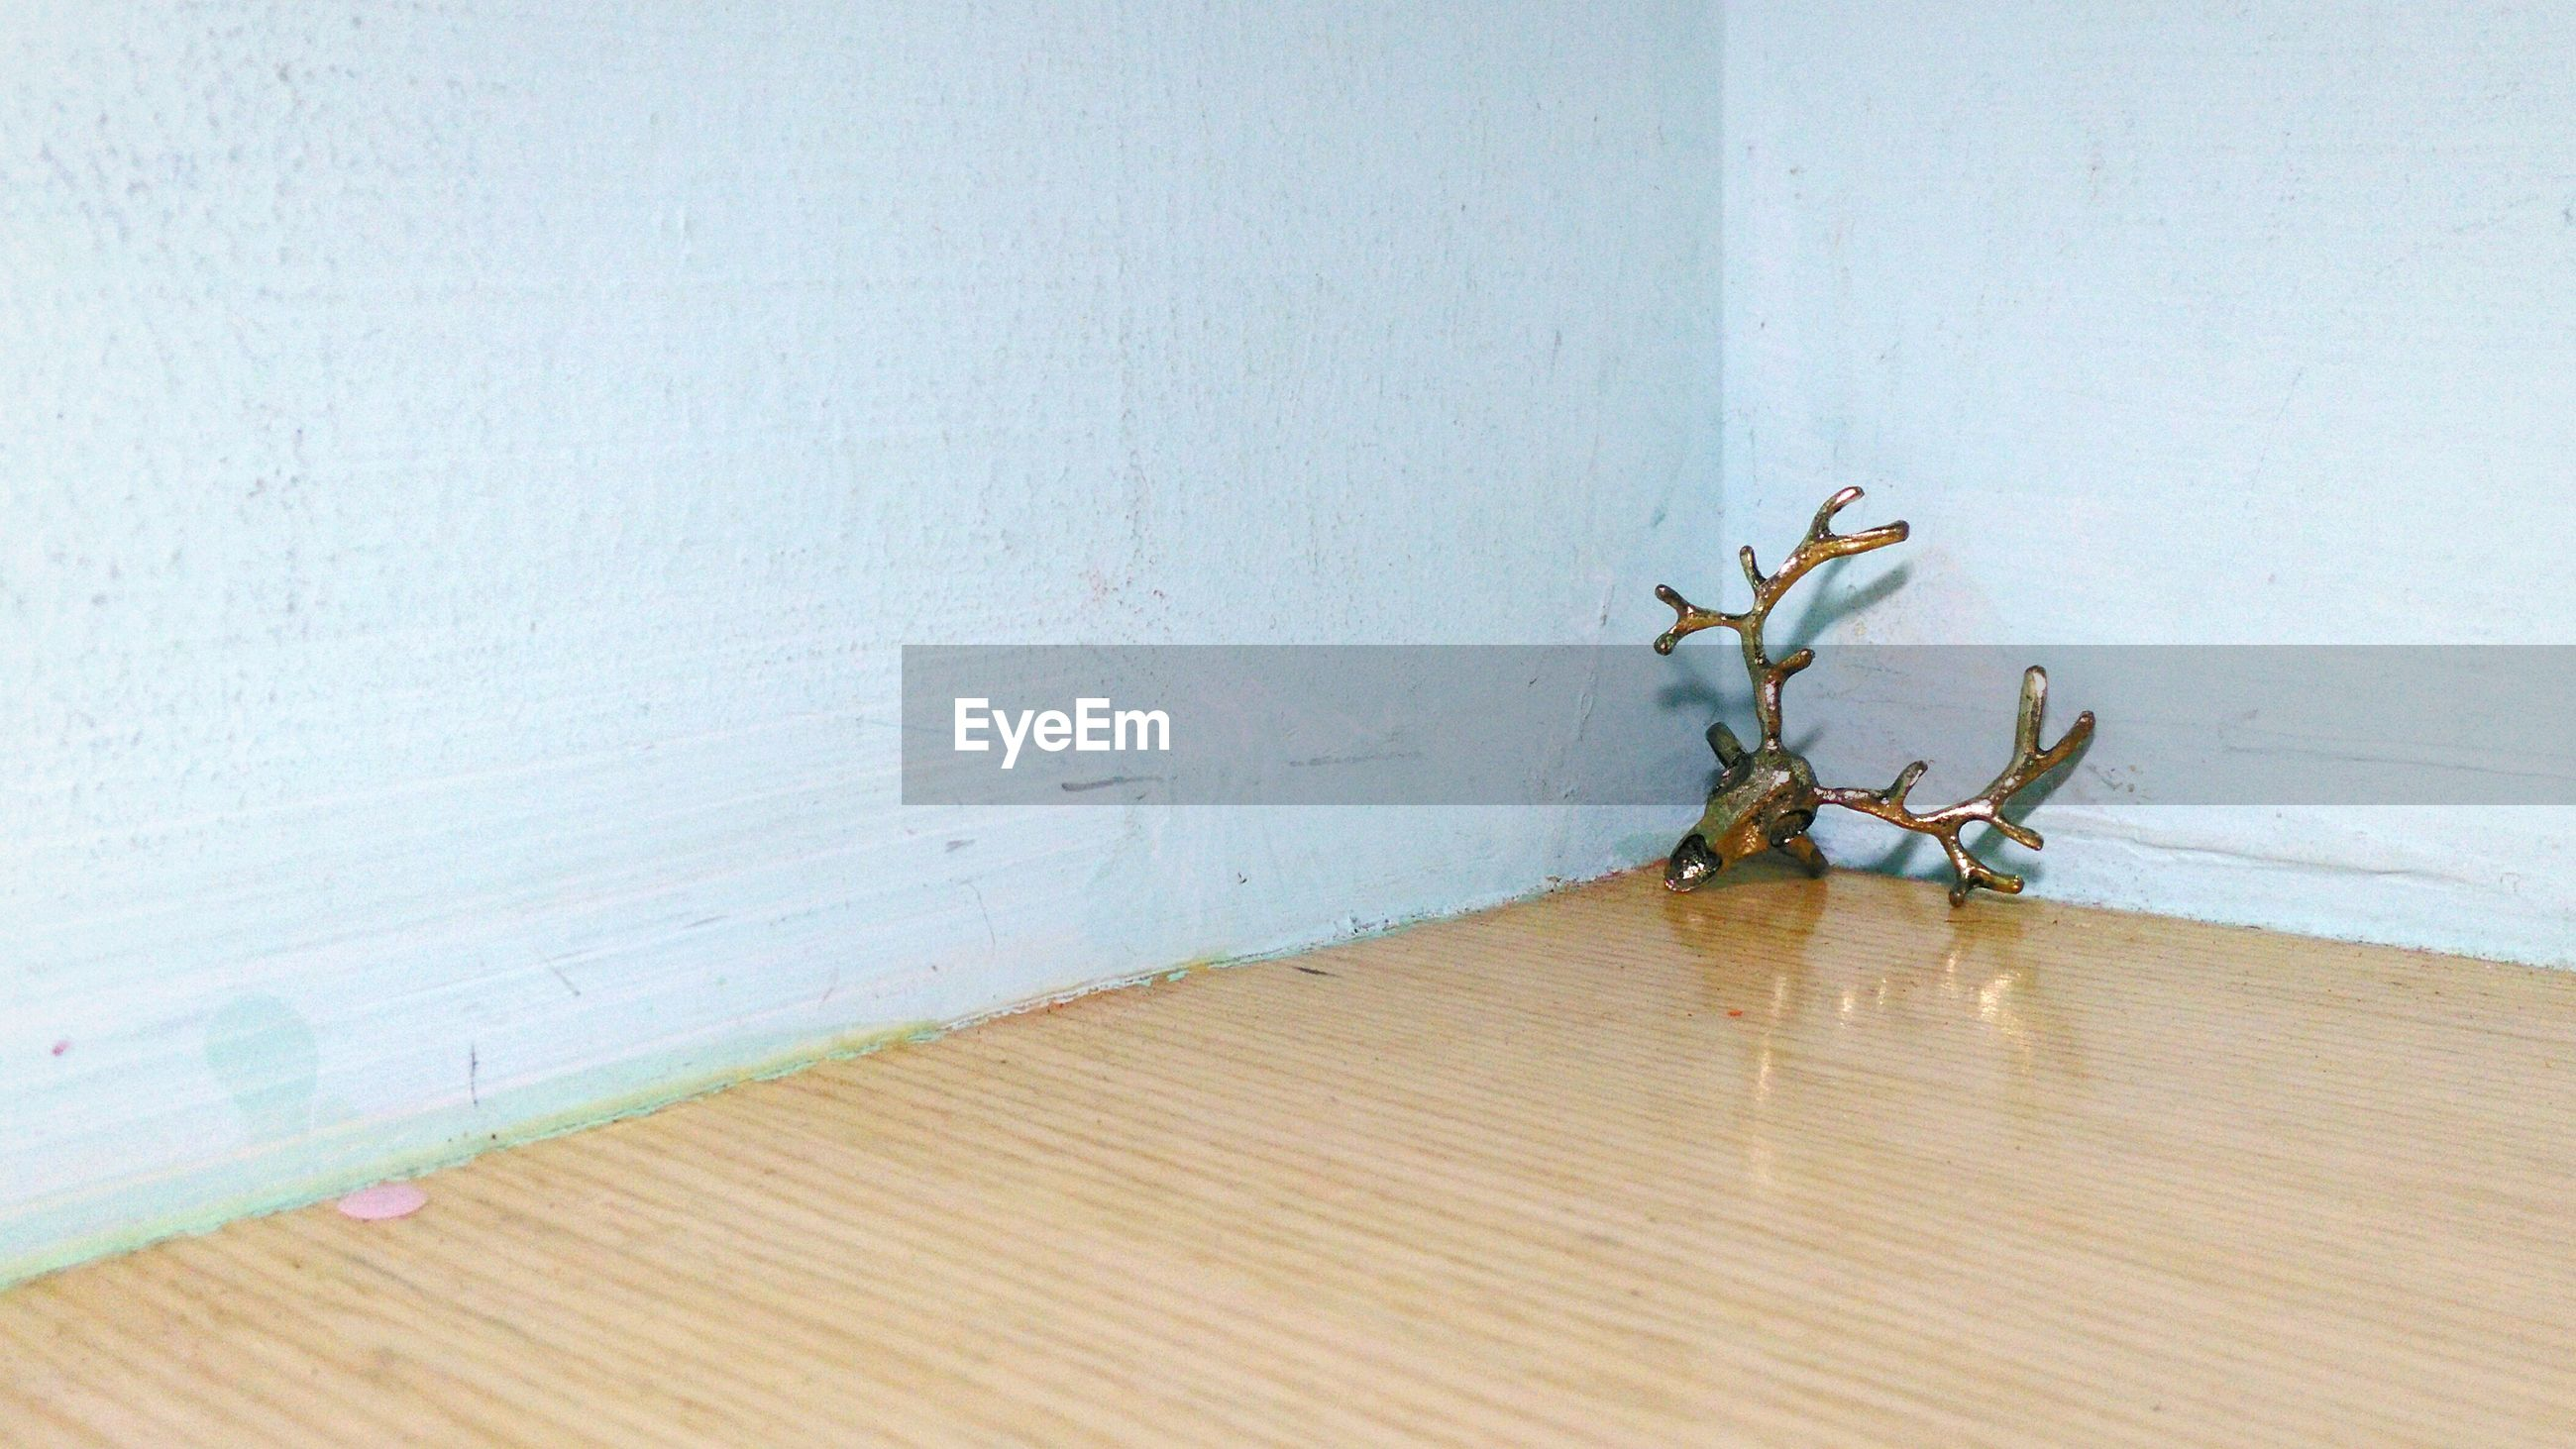 wall - building feature, wall, wood - material, indoors, plant, built structure, shadow, no people, copy space, wooden, growth, stem, architecture, day, close-up, nature, leaf, sunlight, wood, home interior